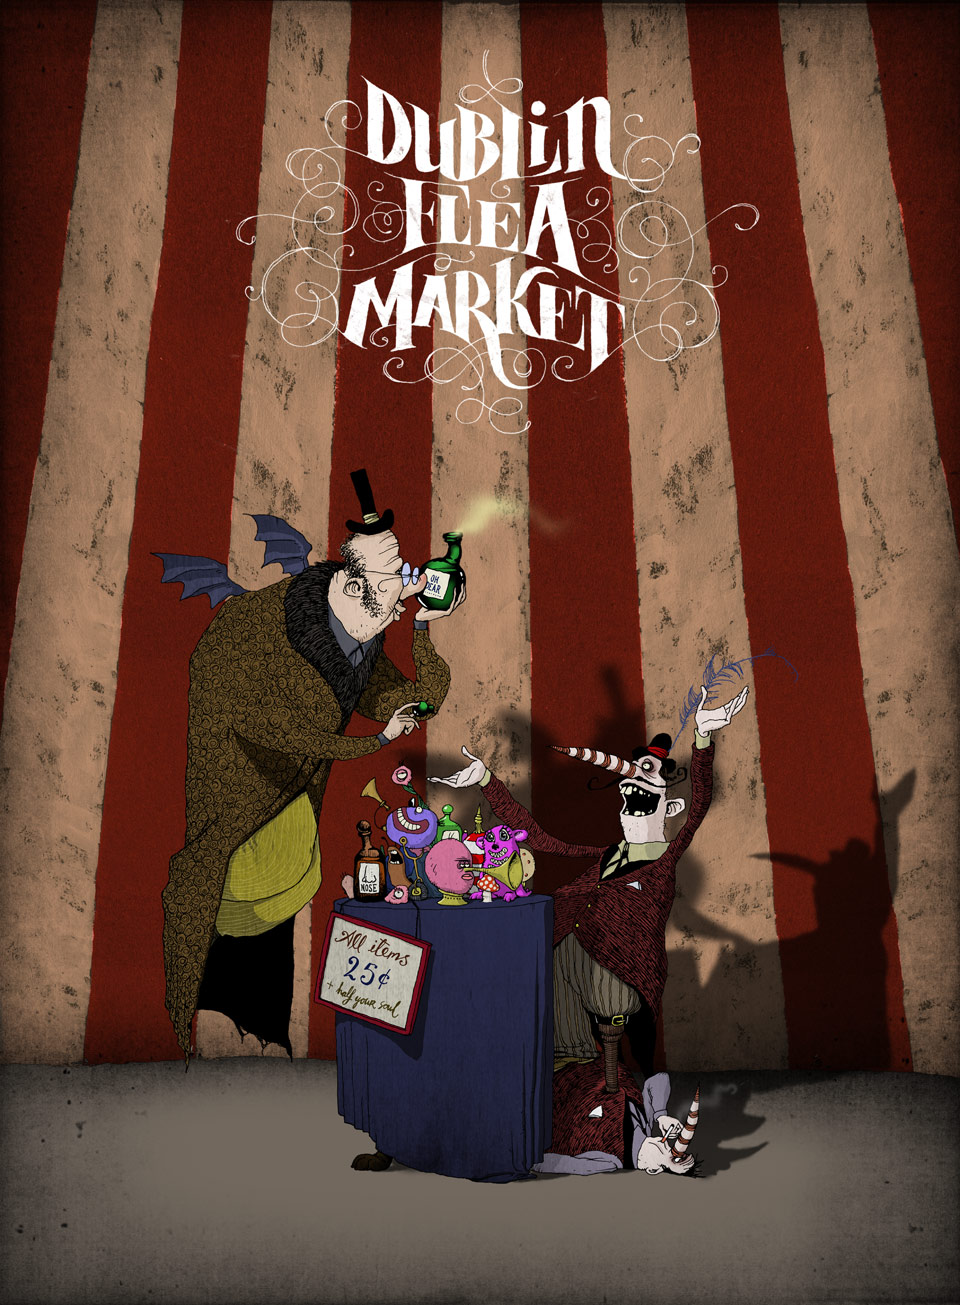 DUBLIN FLEA MARKET POSTER ARTWORK Pen and Ink, Digital Colour